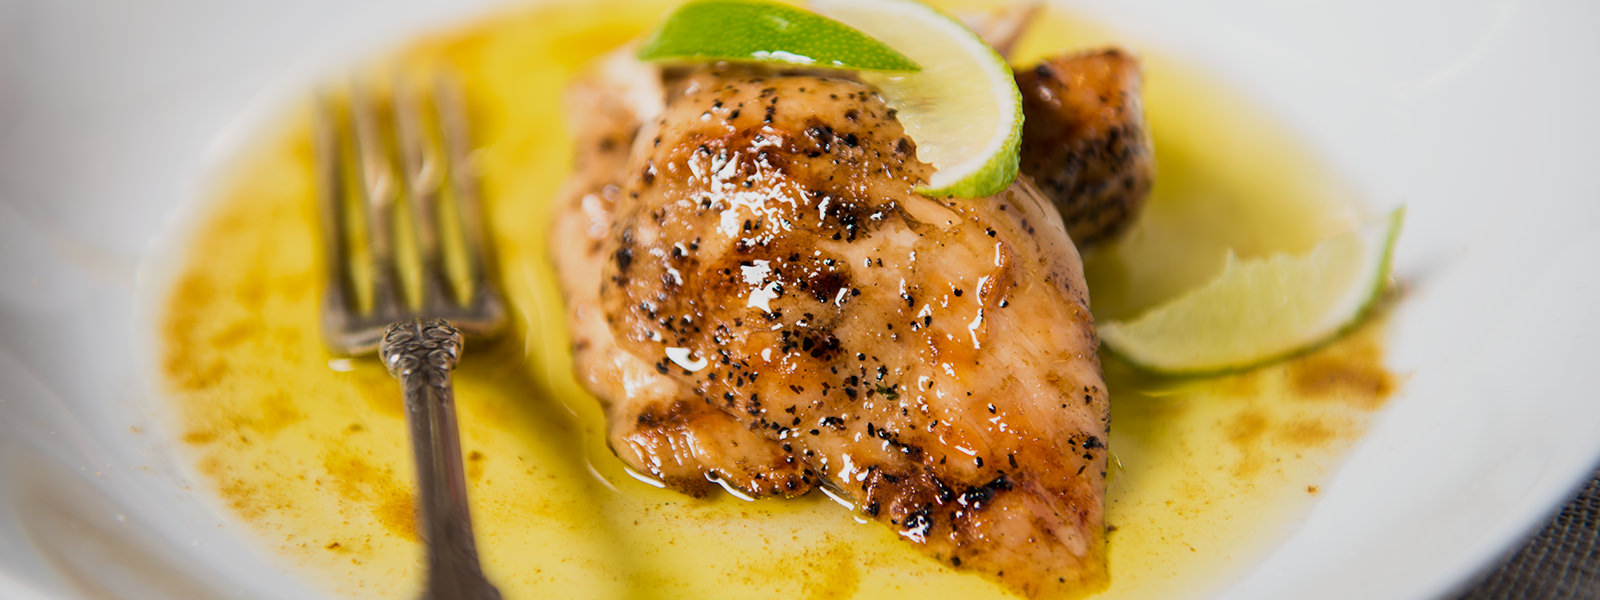 Cumin citrus grilled chicken recipes traeger wood fired grills cumin citrus grilled chicken forumfinder Image collections